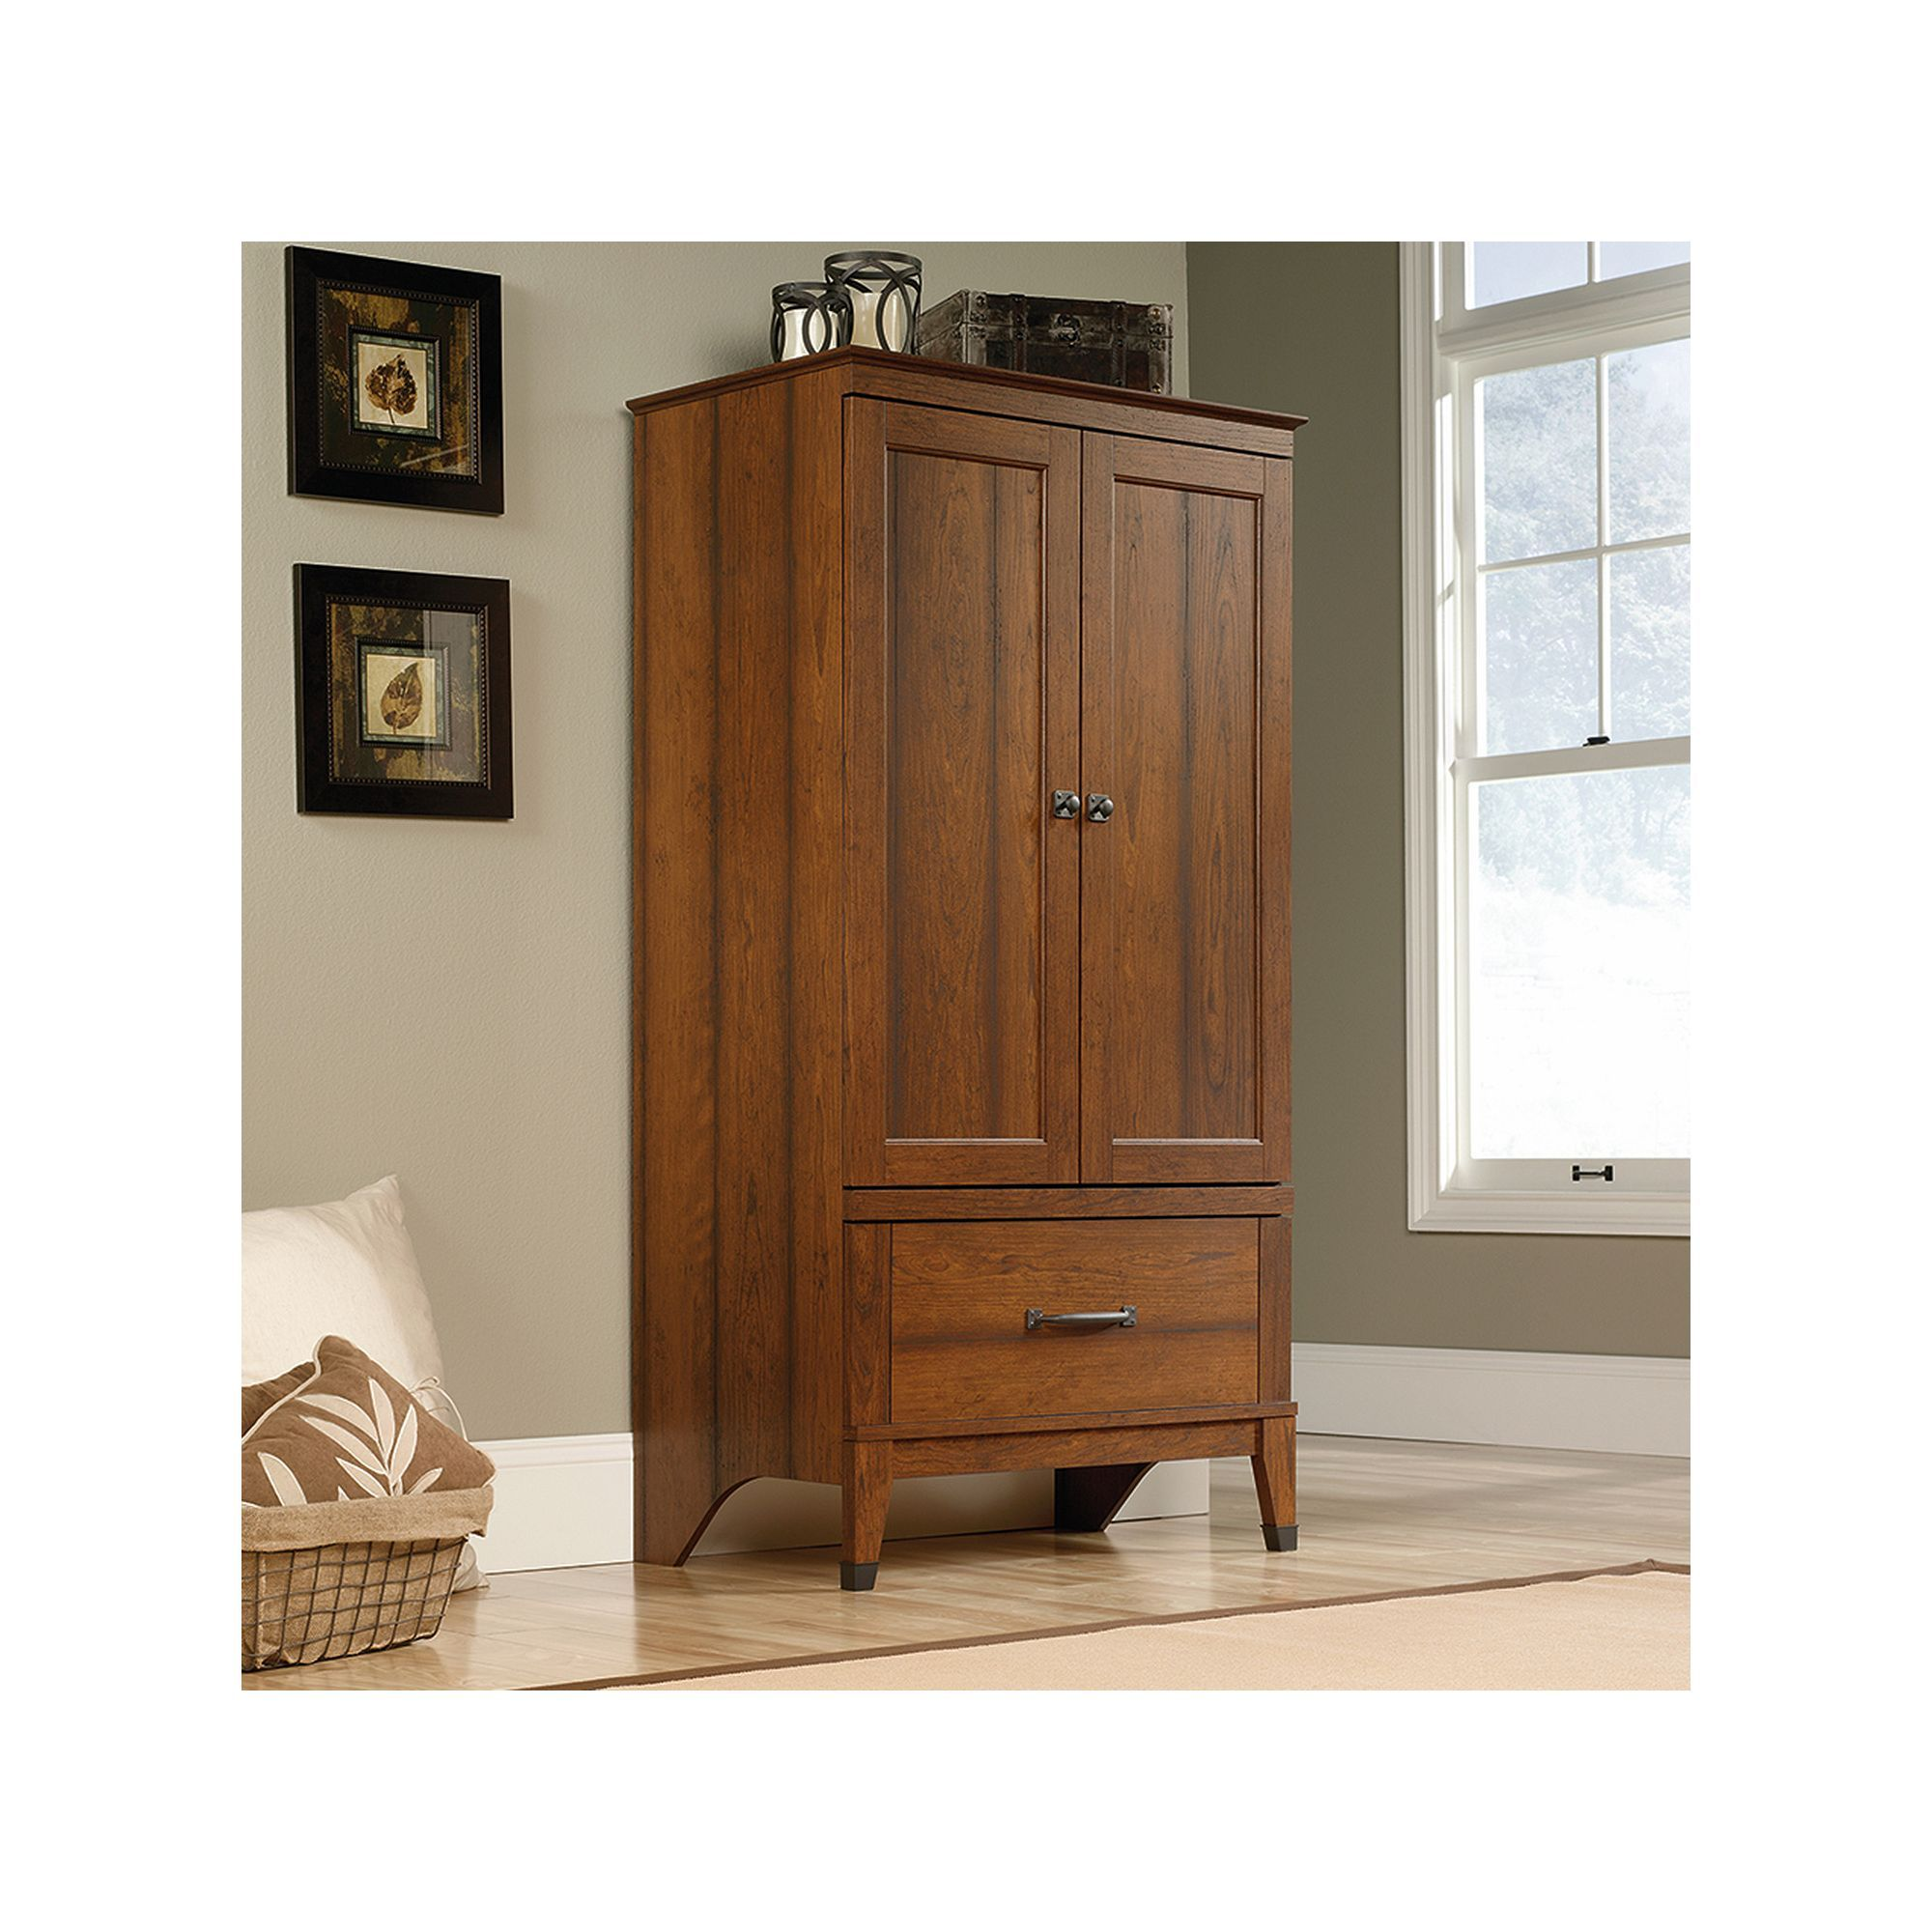 Sauder carson forge collection armoire products pinterest